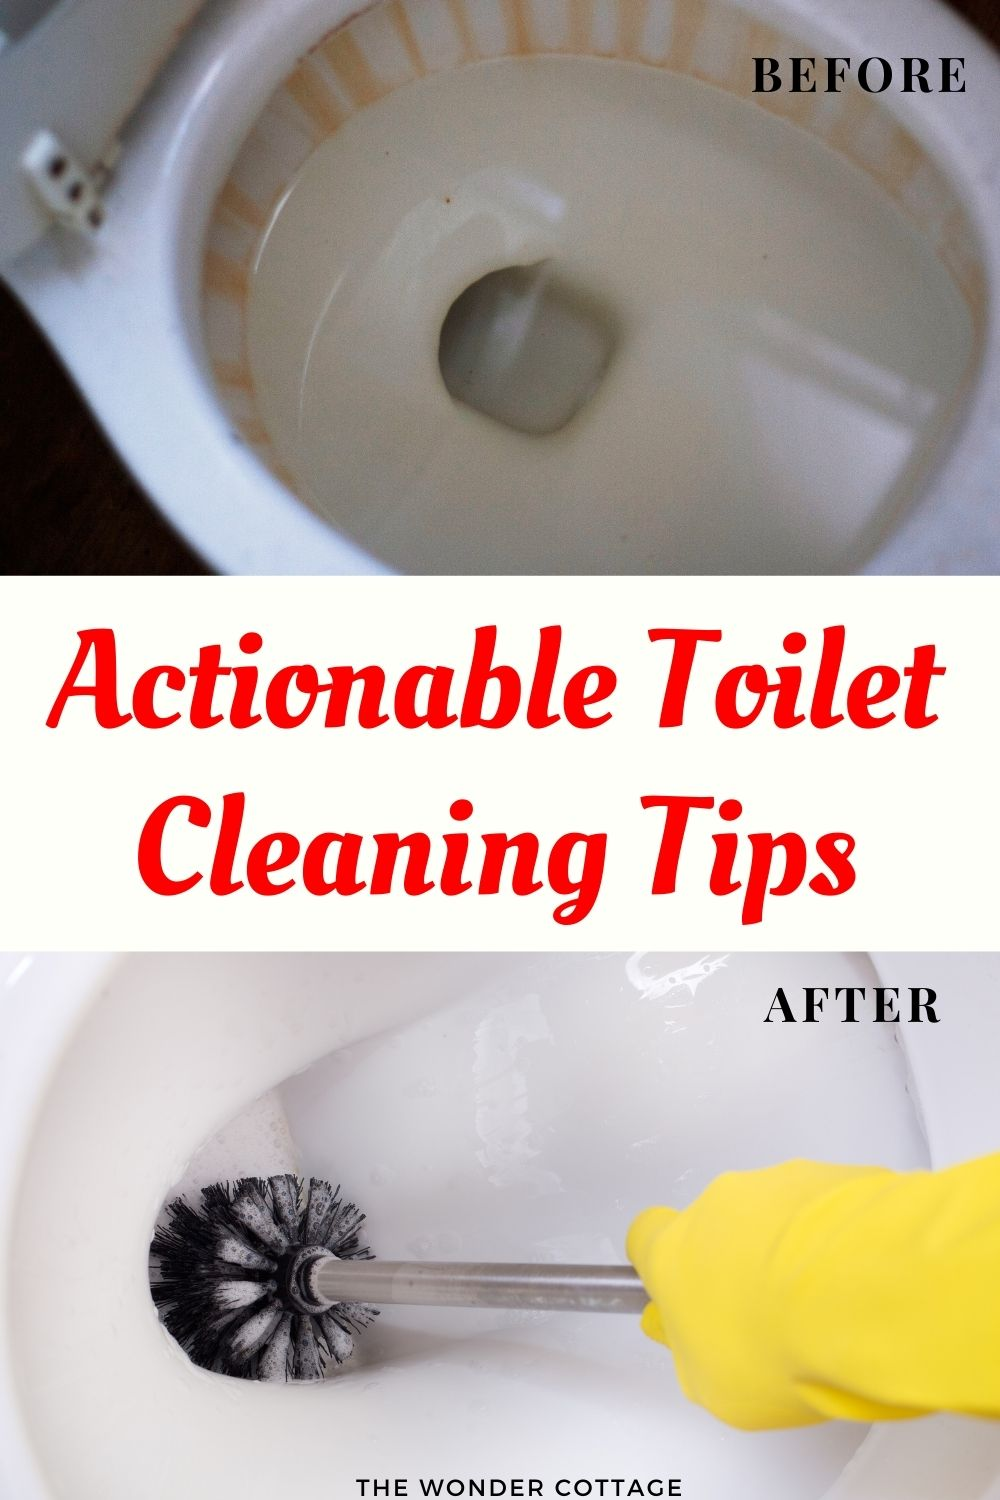 Actionable toilet cleaning tips